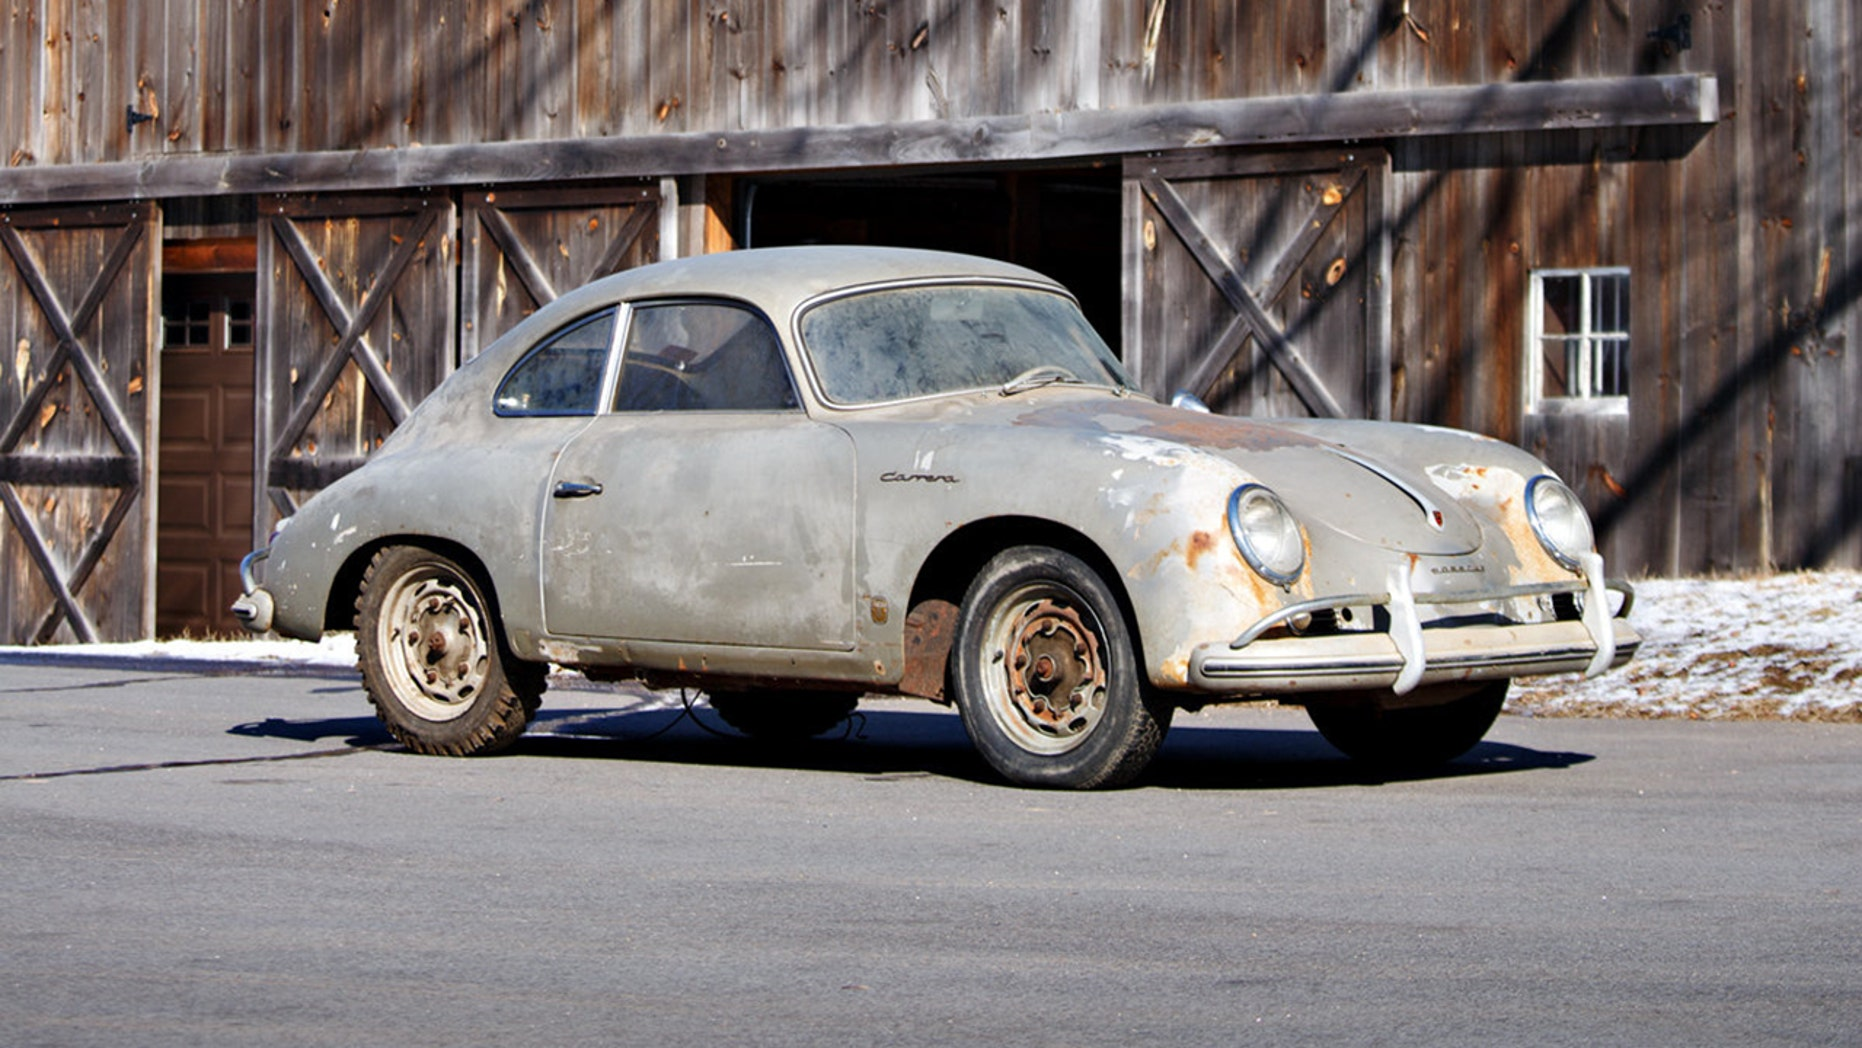 Rusty Porsche Barn Find Expected To Sell For 700 000 Or More